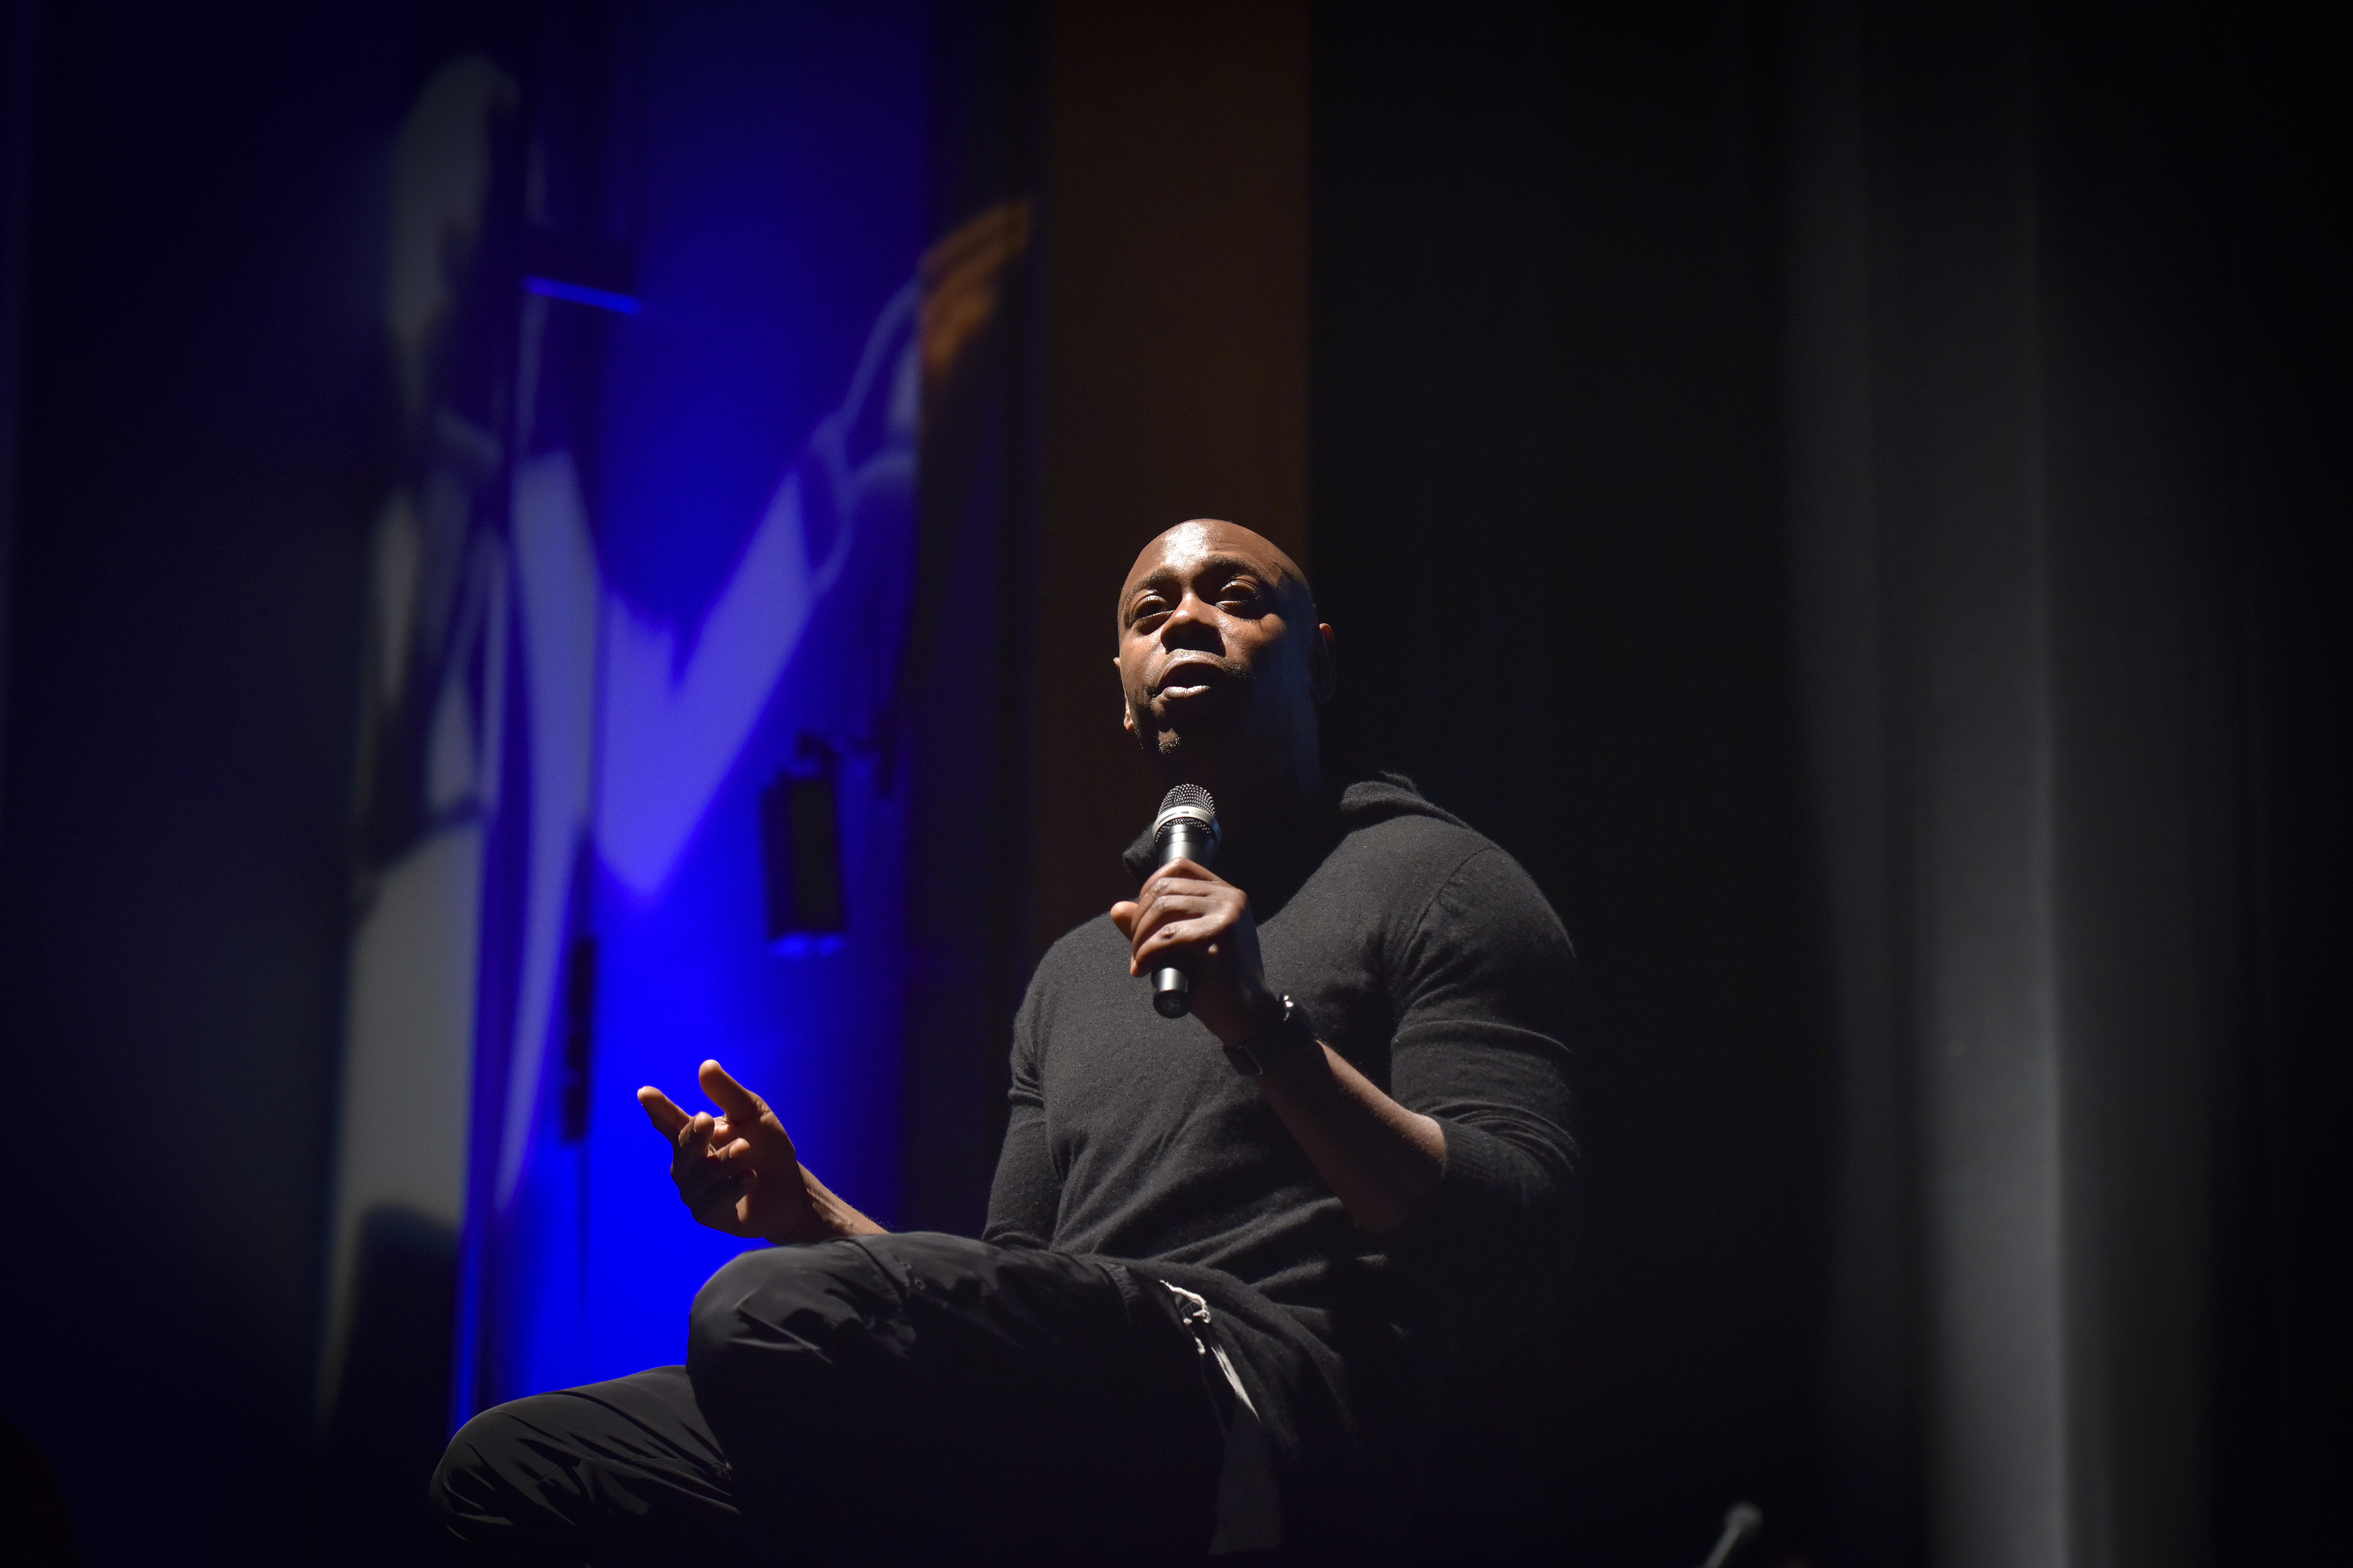 dave chappelle mourns george floyd rips the media in a new netflix special the washington post https www washingtonpost com nation 2020 06 12 dave chappelle george floyd